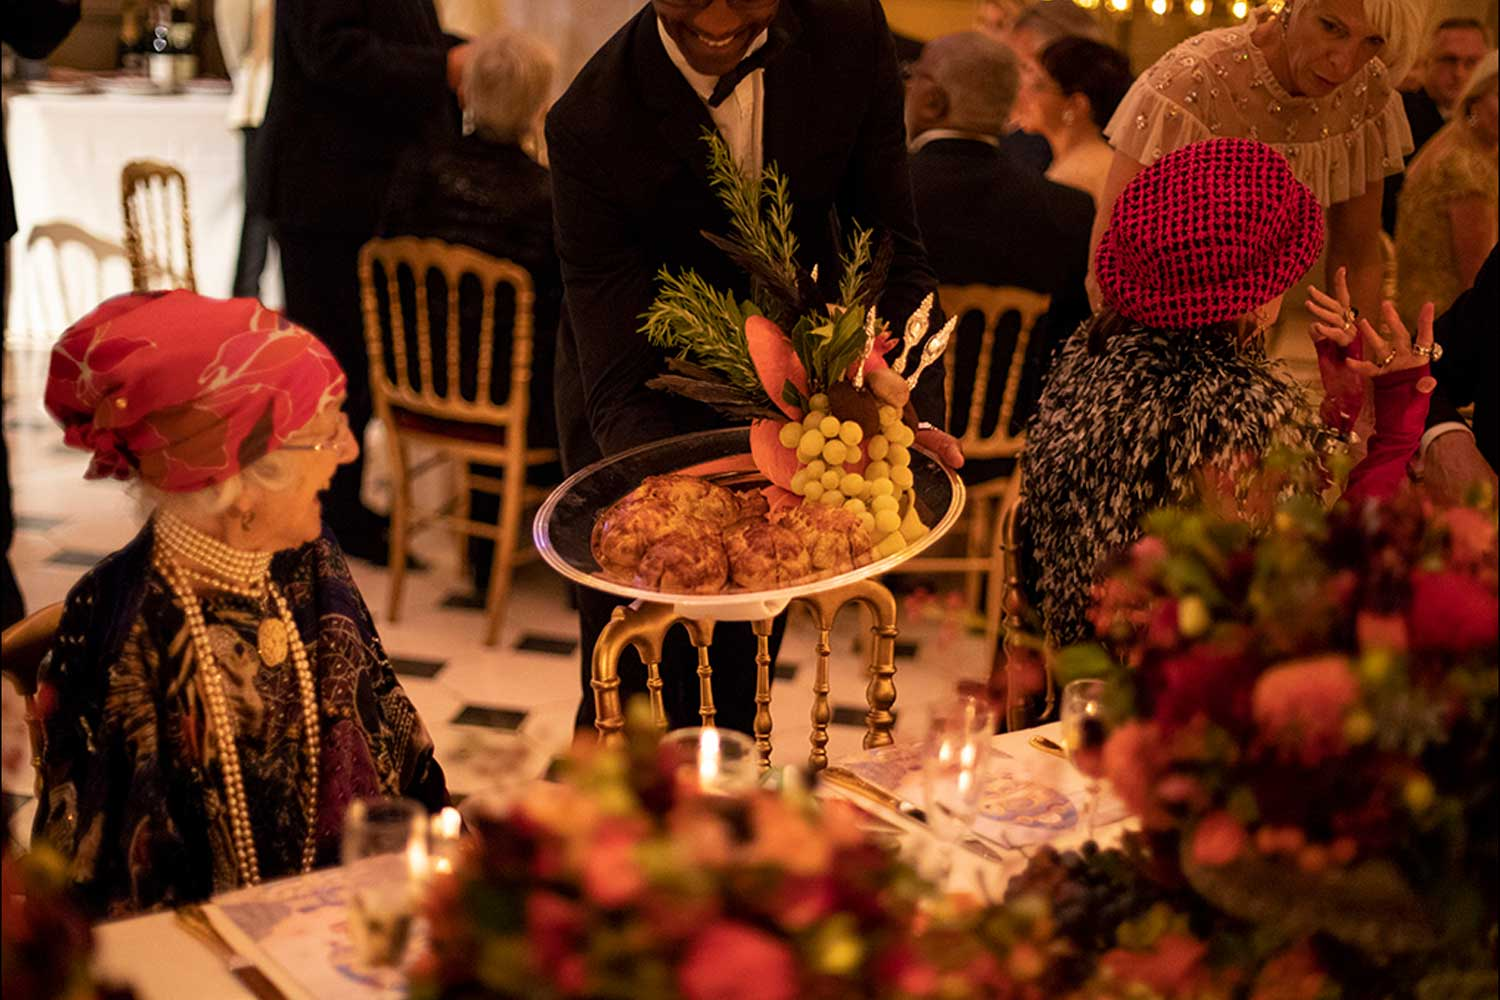 Designer Joyce Conwy Evans smiling at the presentation of food at an event. The table is set with autumnal flowers and food.